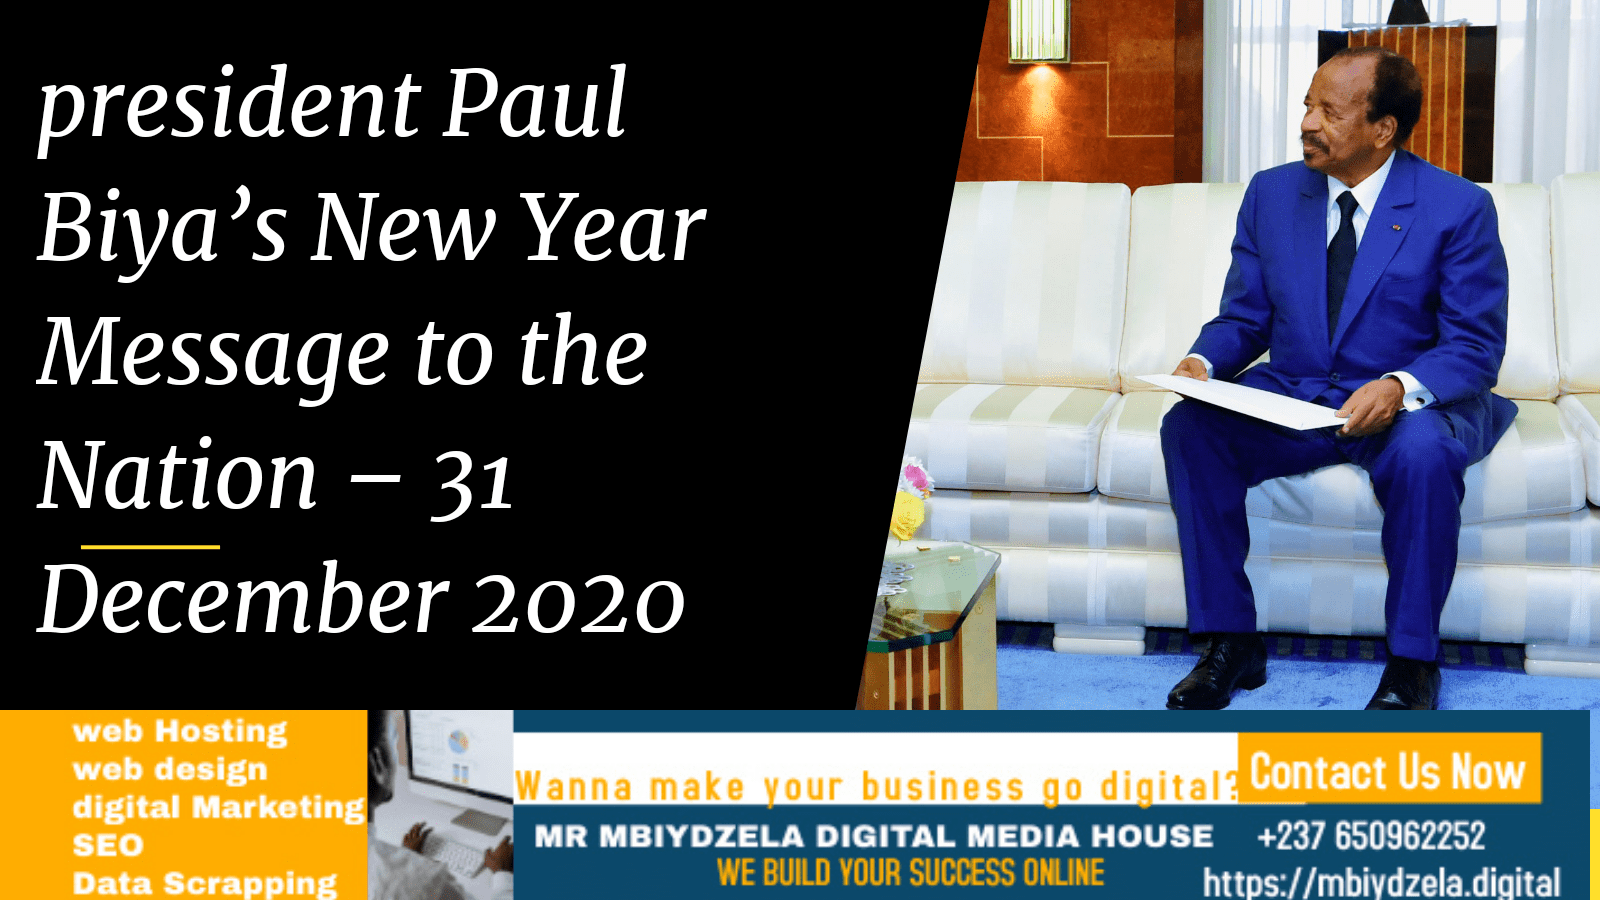 President Paul Biya's New Year Message to the Nation – 31 December 2020